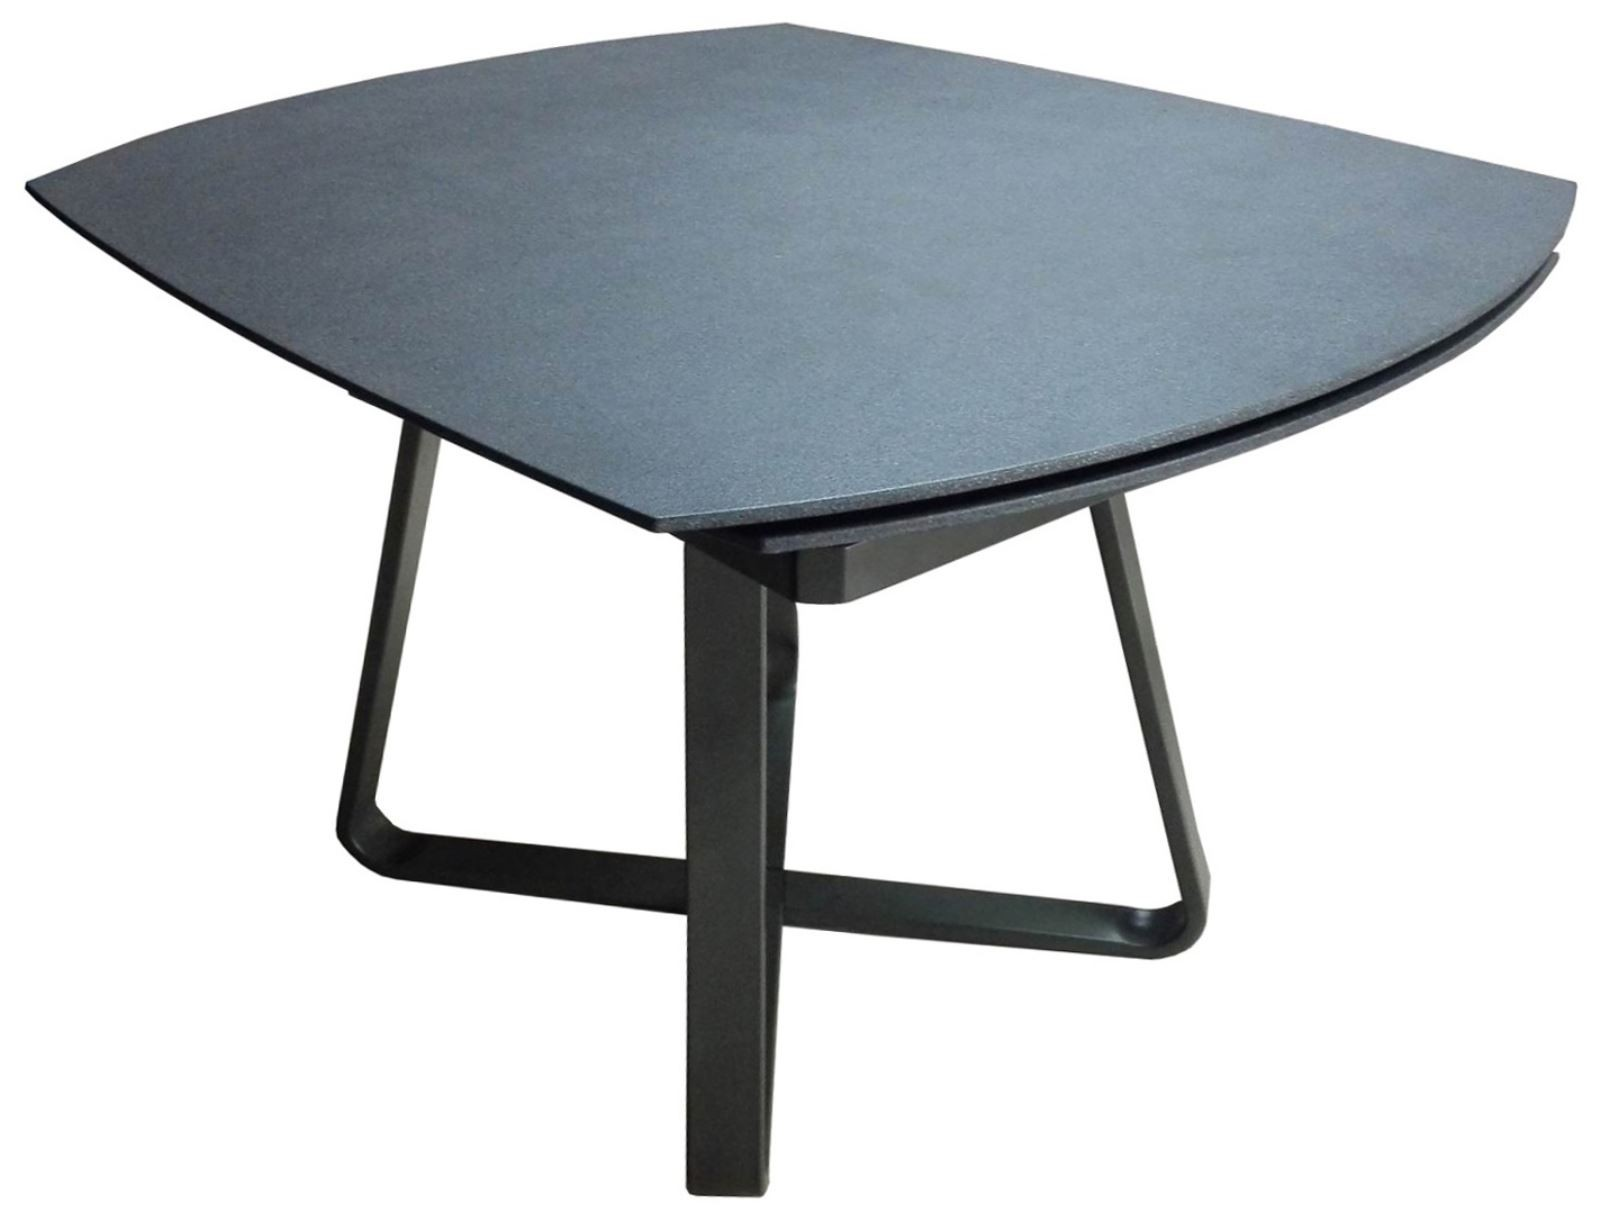 CONTEMPORARY Twist Dining Table